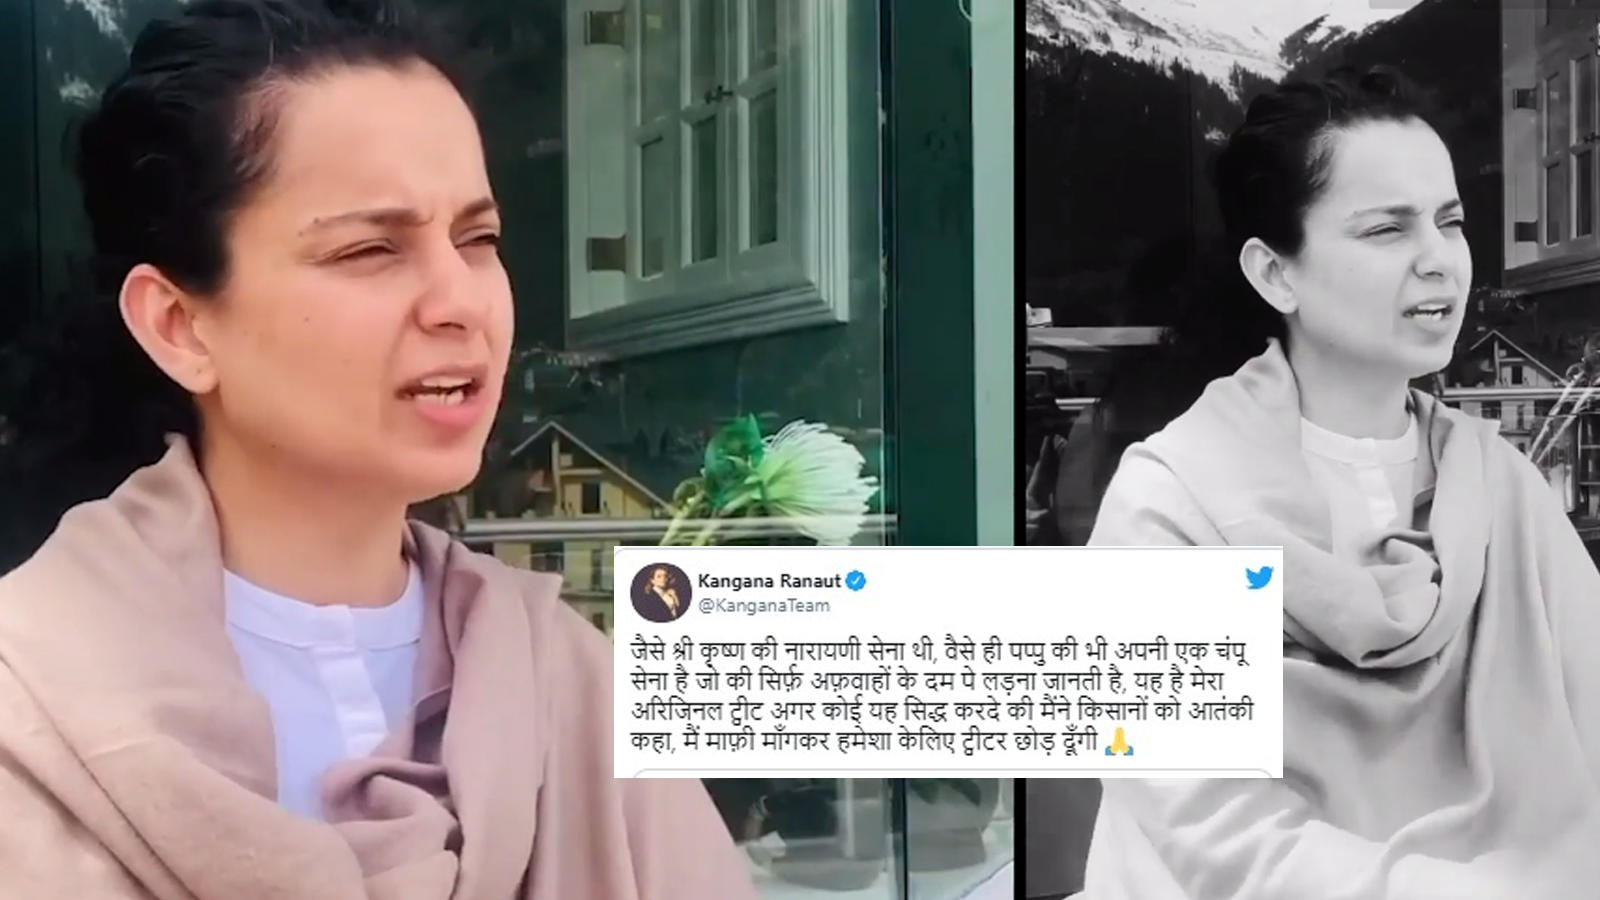 kangana-ranaut-claims-that-she-will-quit-twitter-if-anyone-proves-she-called-farmers-terrorists